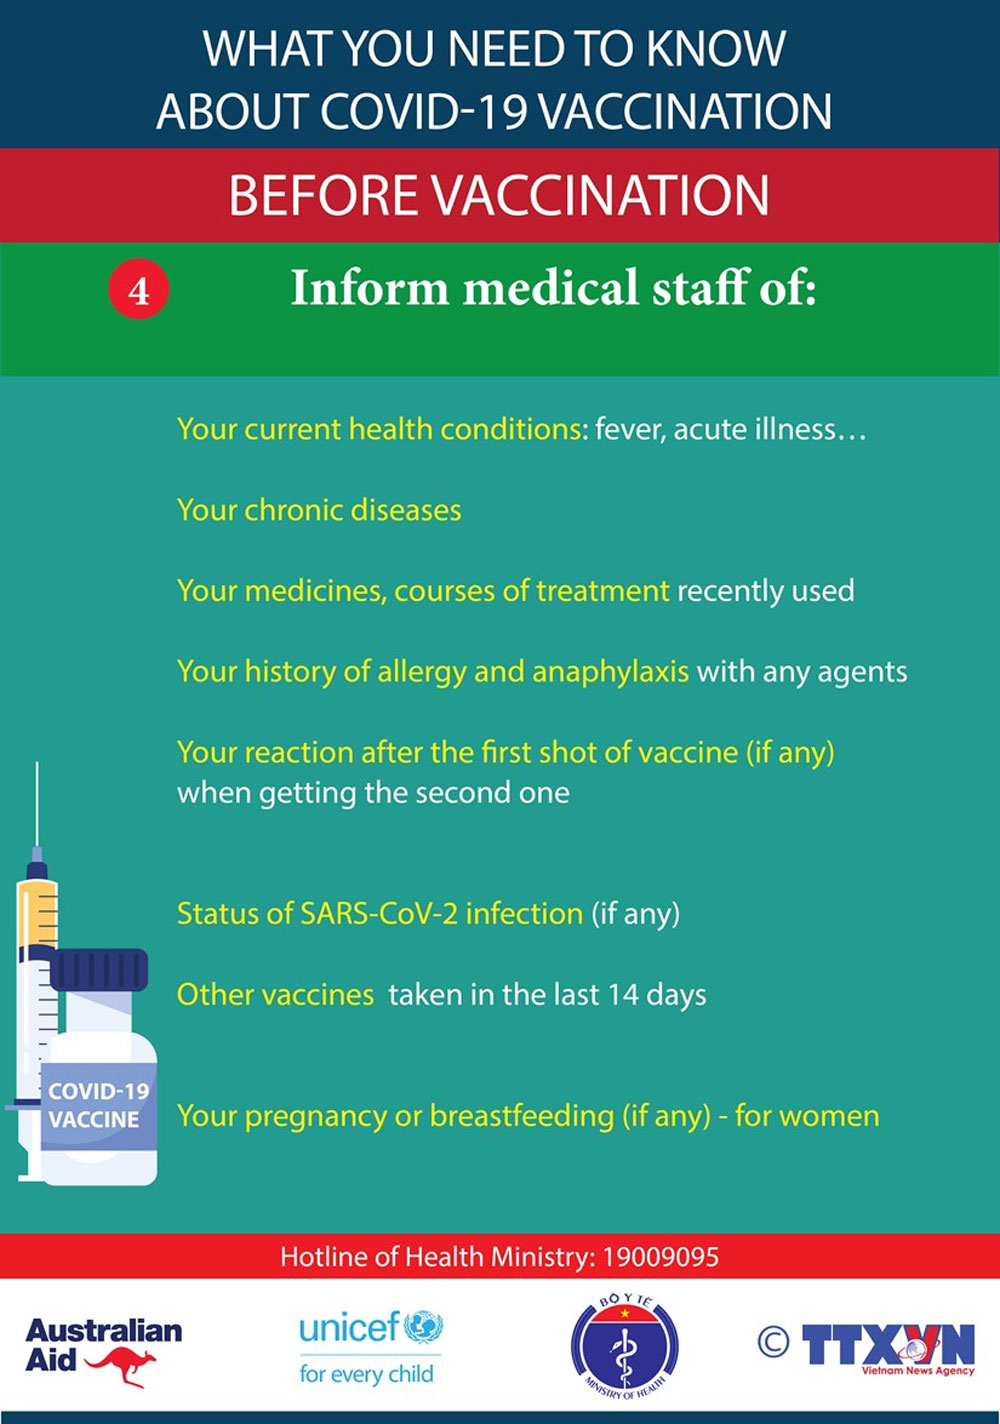 need to know, Covid-19 vaccination, medical staff,  current health conditions, allergy